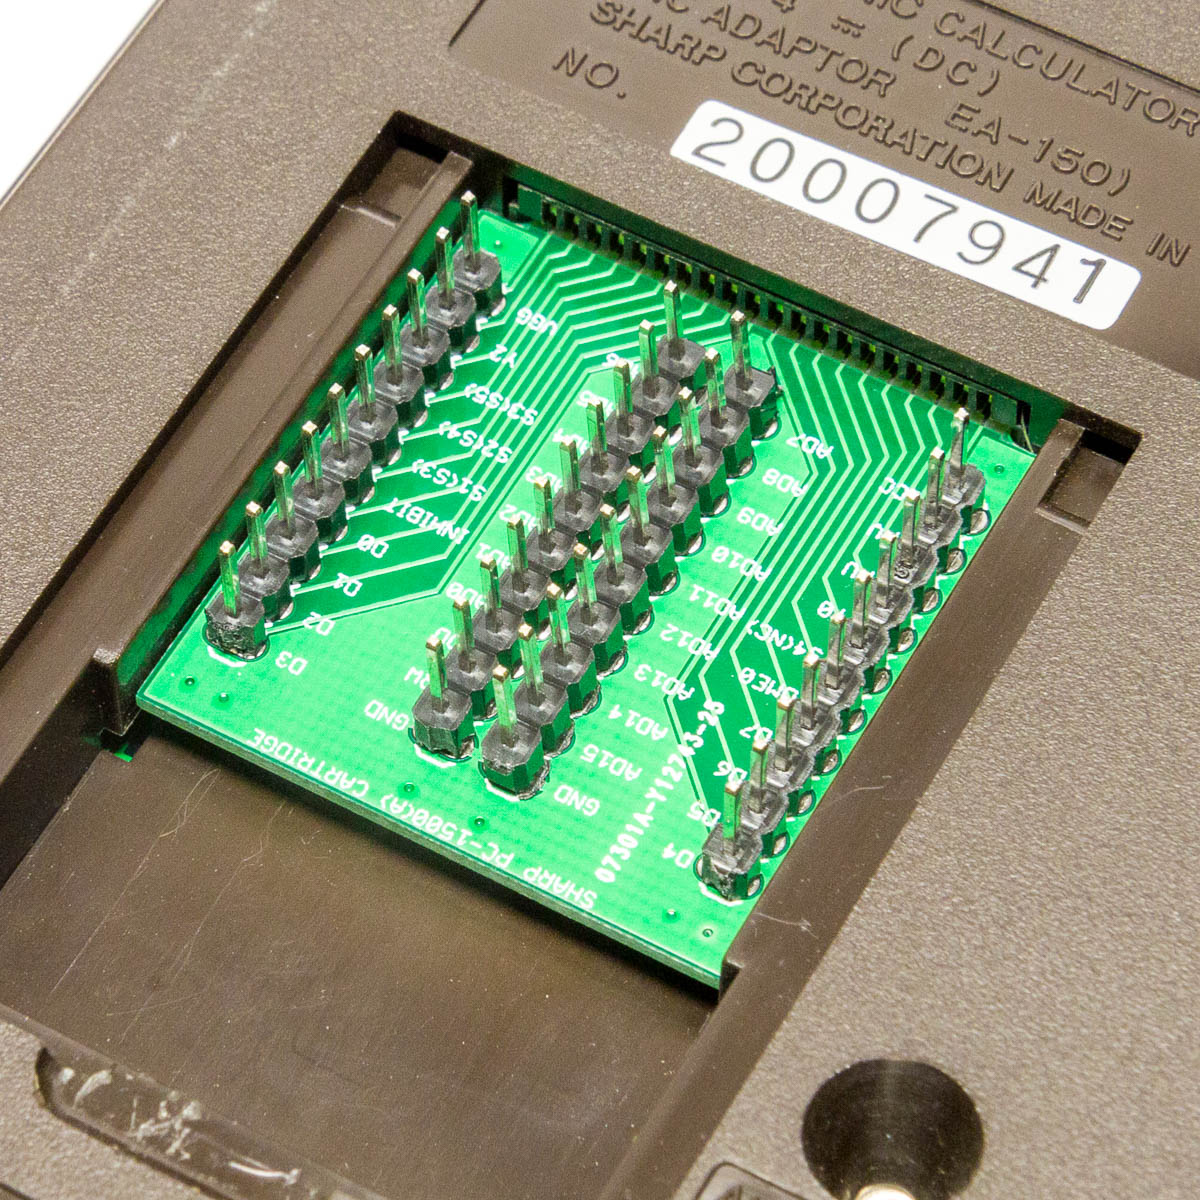 Sharp Debug Cartridge inserted